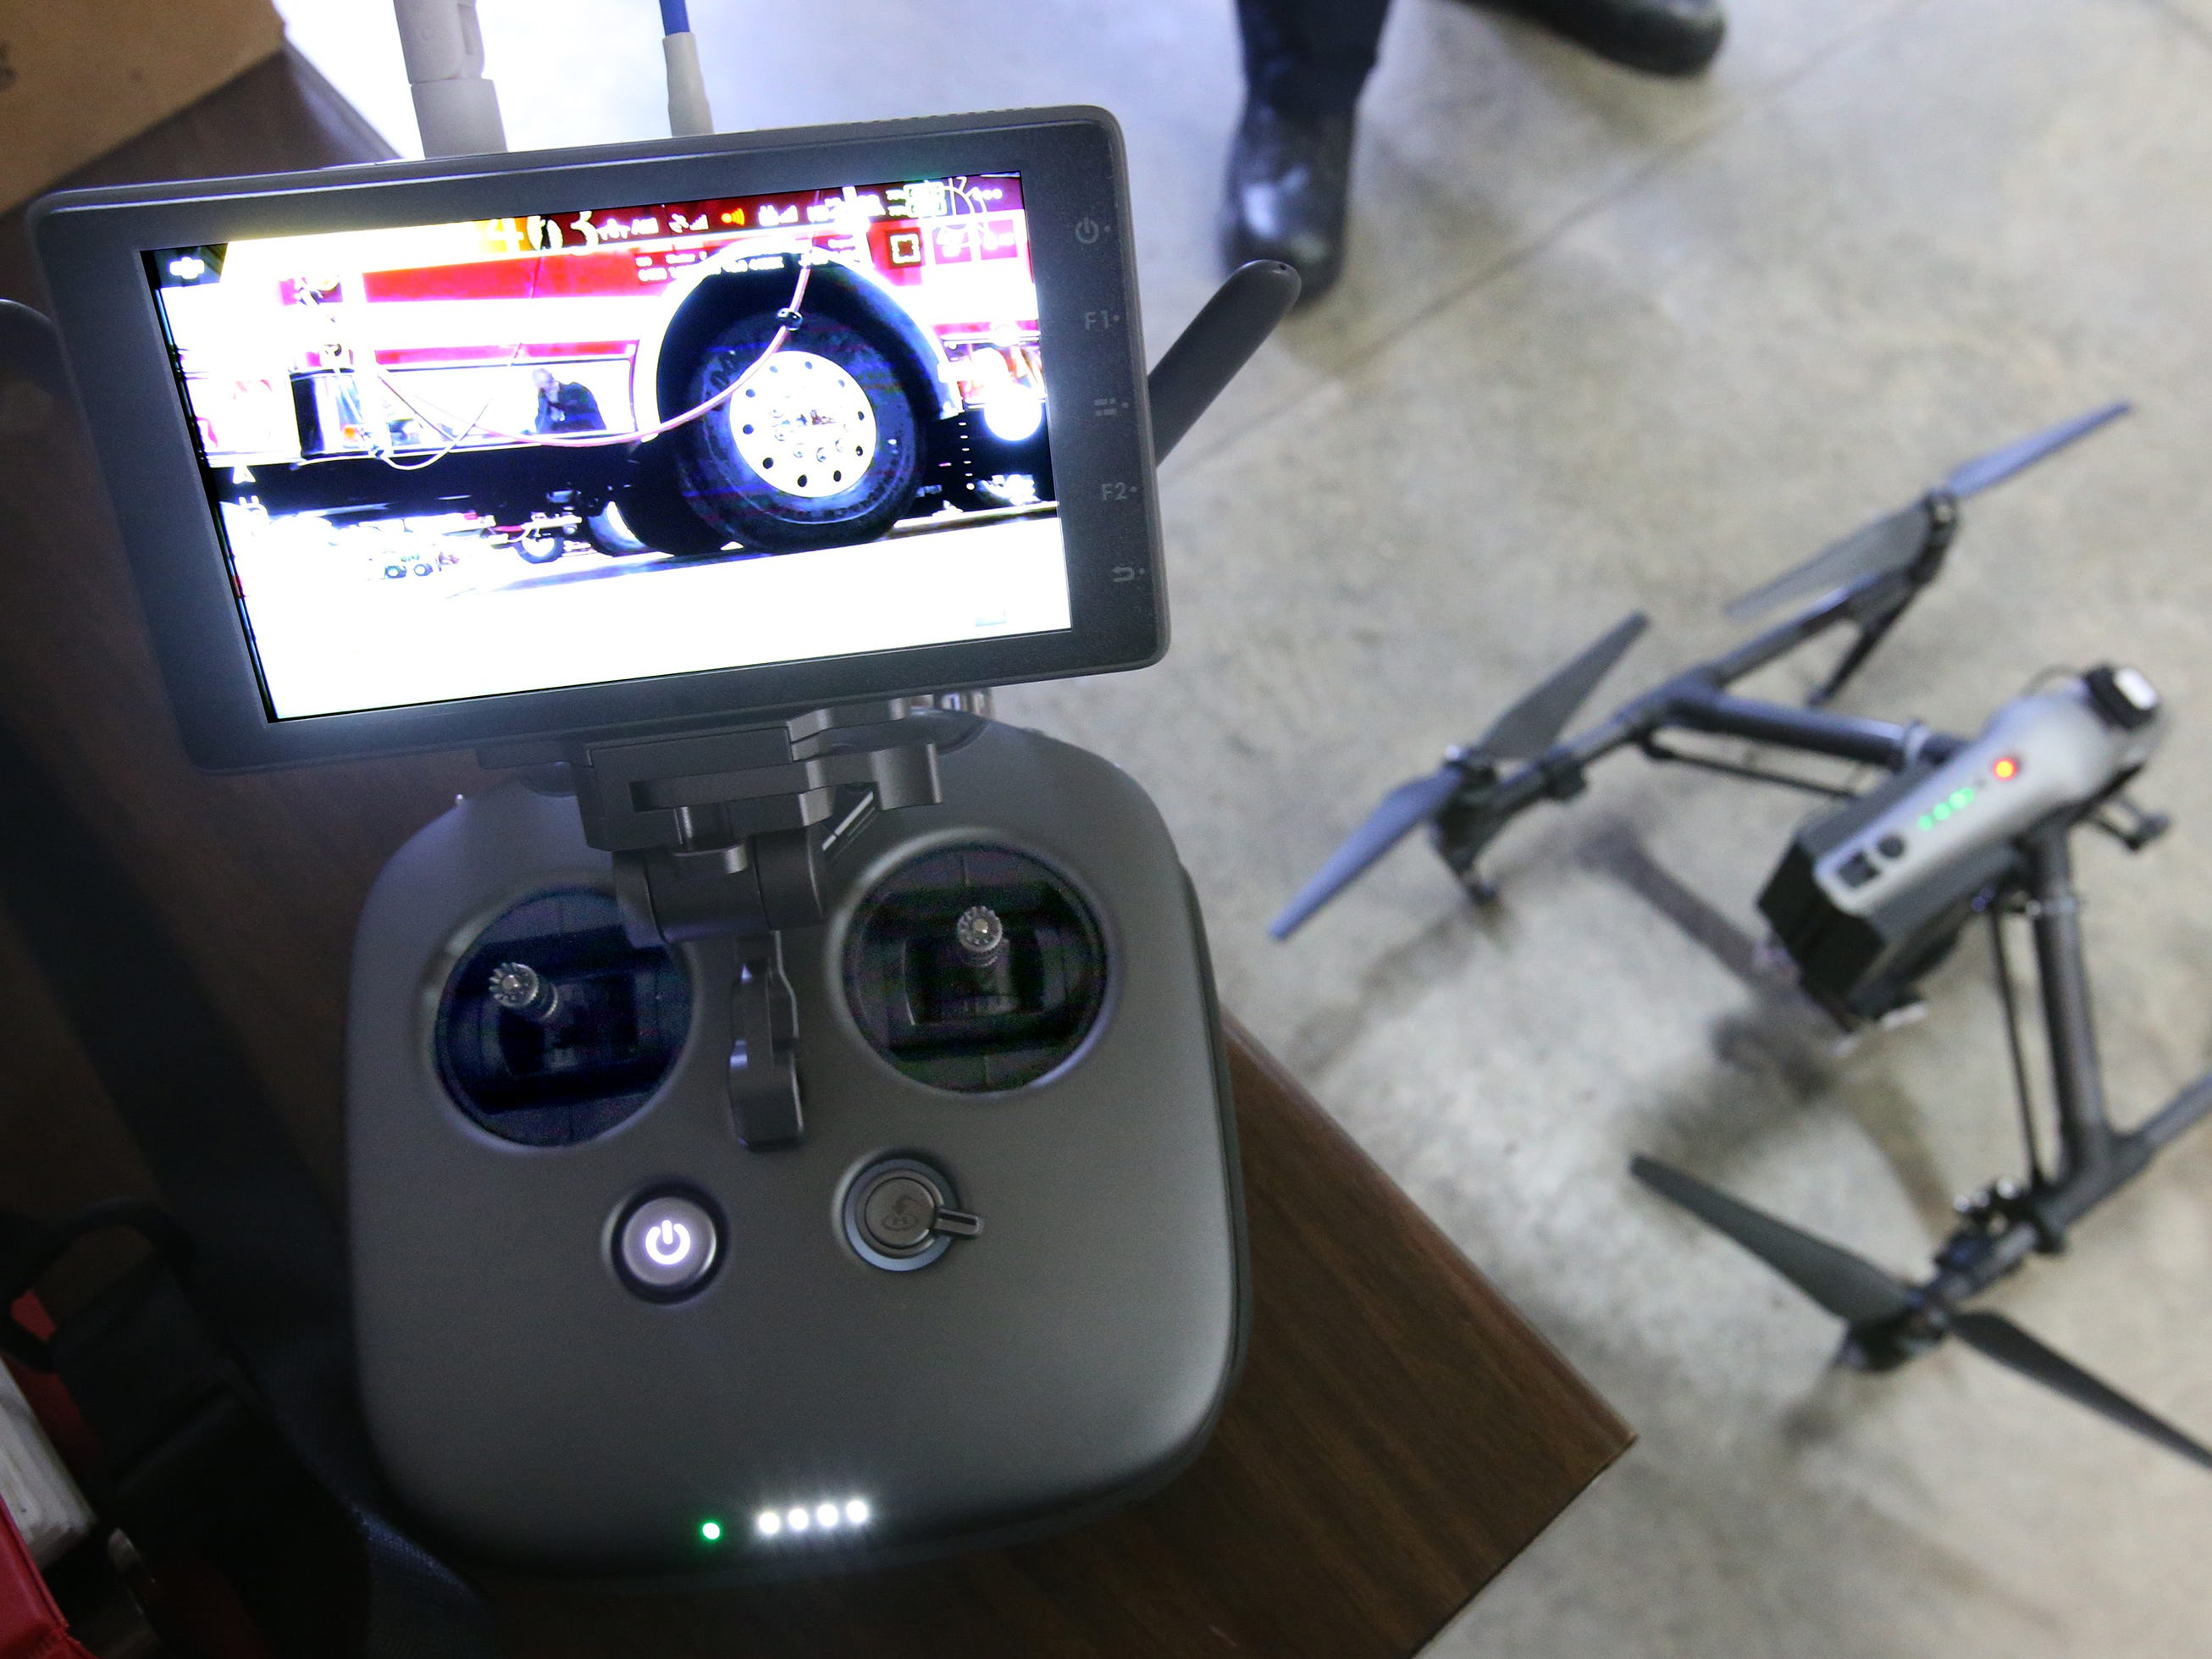 The Merton Fire Department drone controller with real-time high-definition video from one of the drone's two cameras. A second operator monitors tablet receiving imaging from the drone's infrared camera.